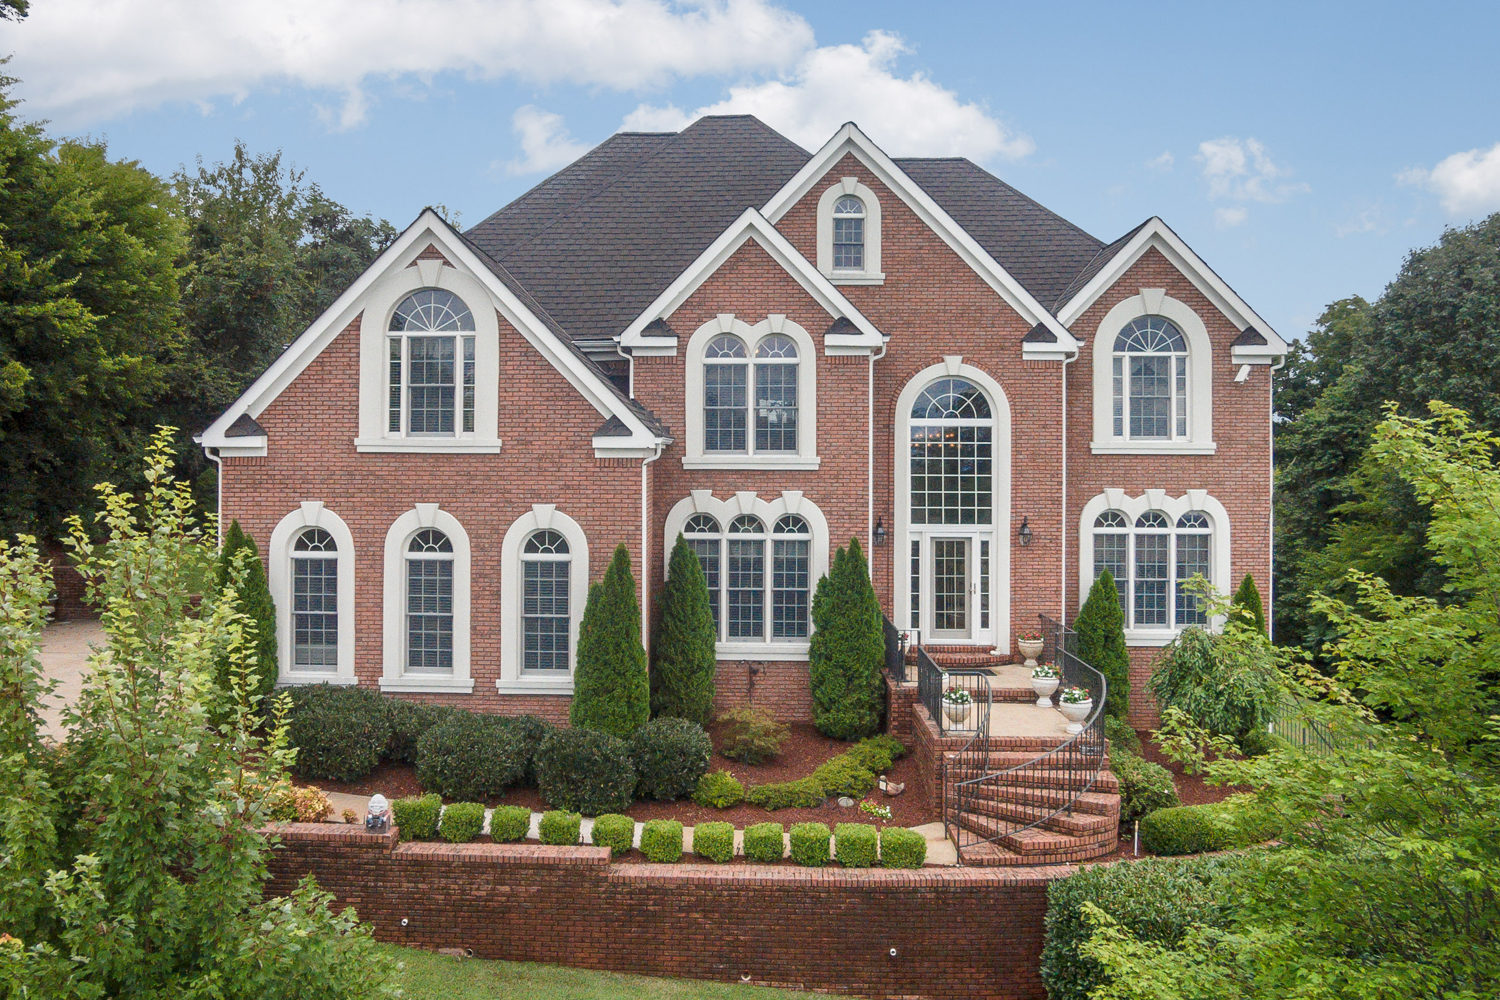 1817 Bay Pointe Dr., Hixson, Tennessee 37343